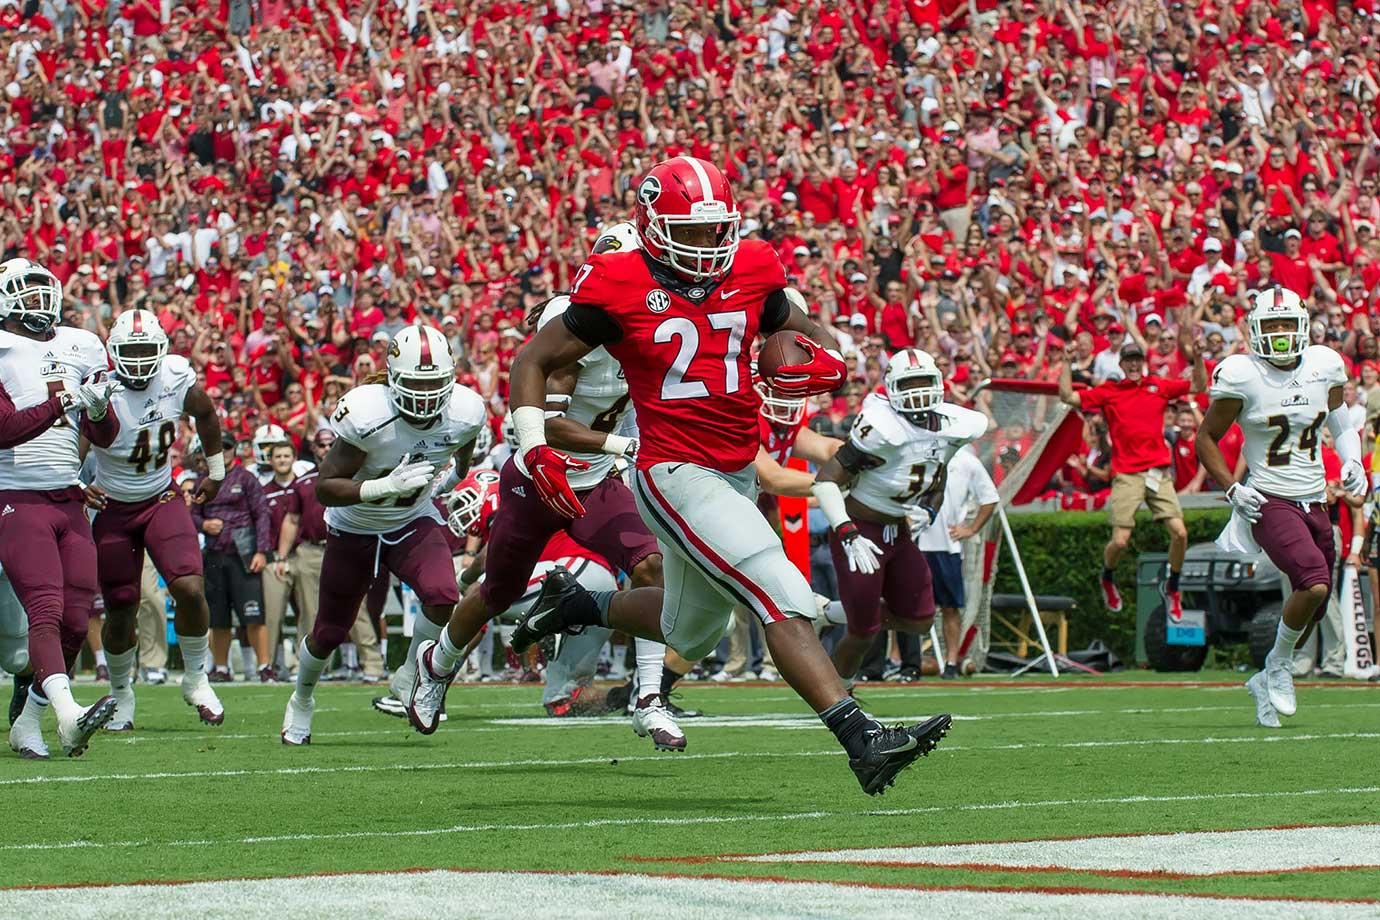 A knee injury ended Chubb's season after just six games in 2015, halting a torrid start in which he gained at least 120 yards in each of the Bulldogs' first five contests. Chubb has looked healthy in fall practices and should be ready when Georgia kicks off the season against North Carolina.